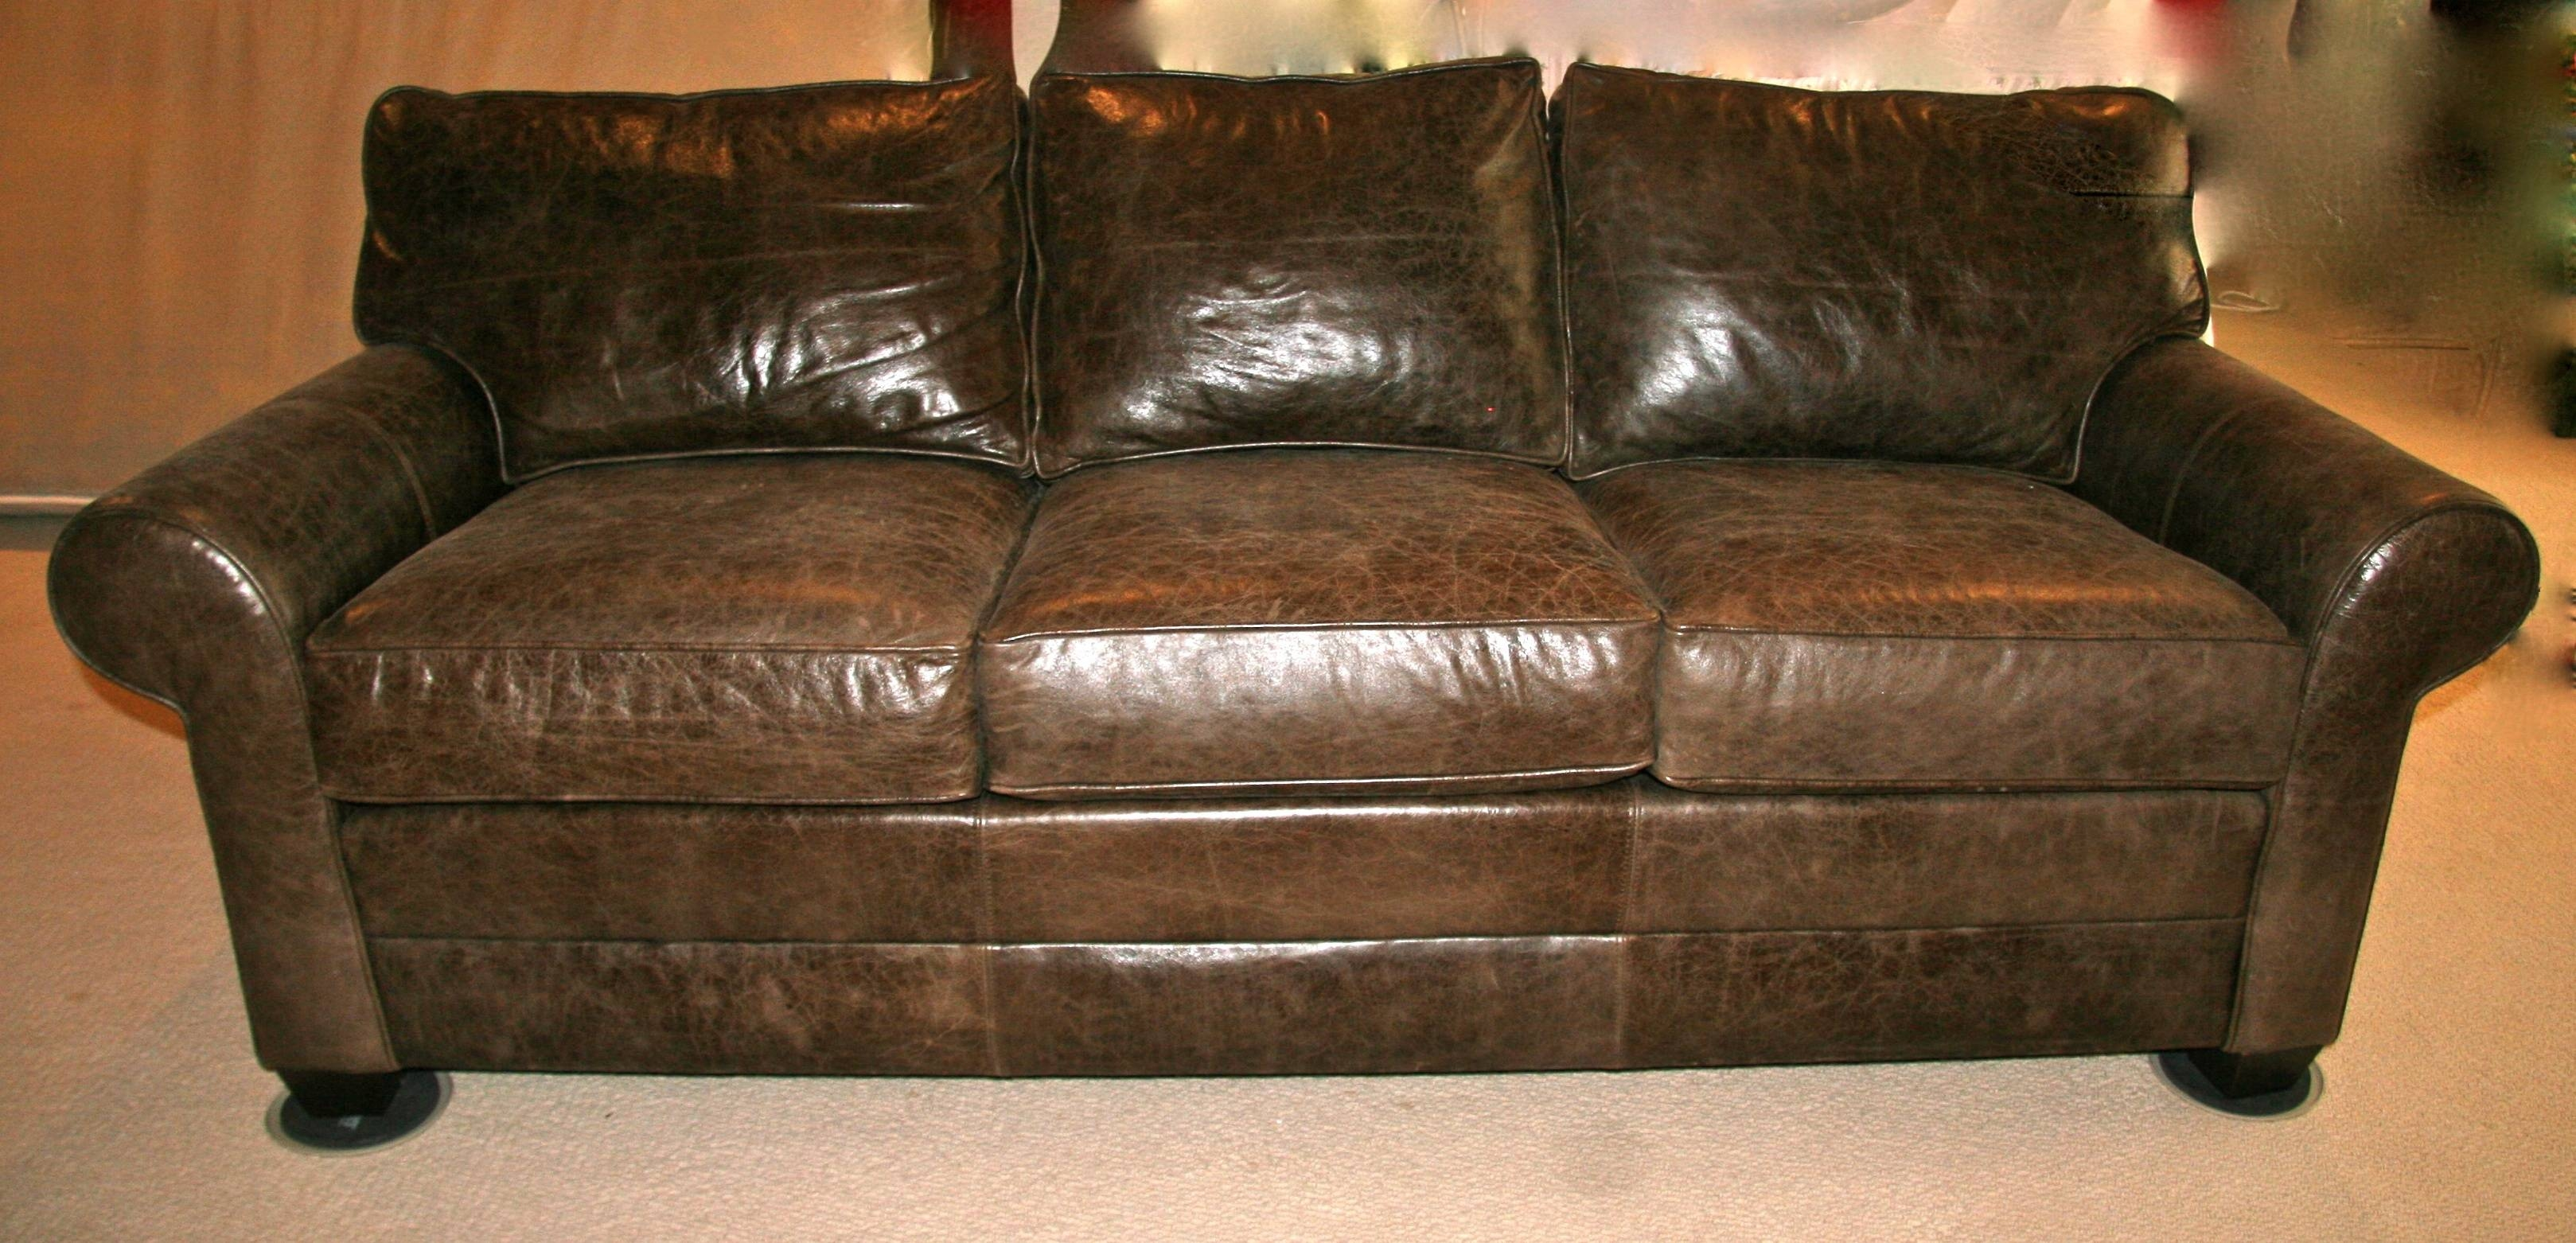 Sofas: Ethan Allen Sofa Bed | Ethan Allen Arcata Sofa Review regarding Ethan Allen Whitney Sofas (Image 8 of 15)